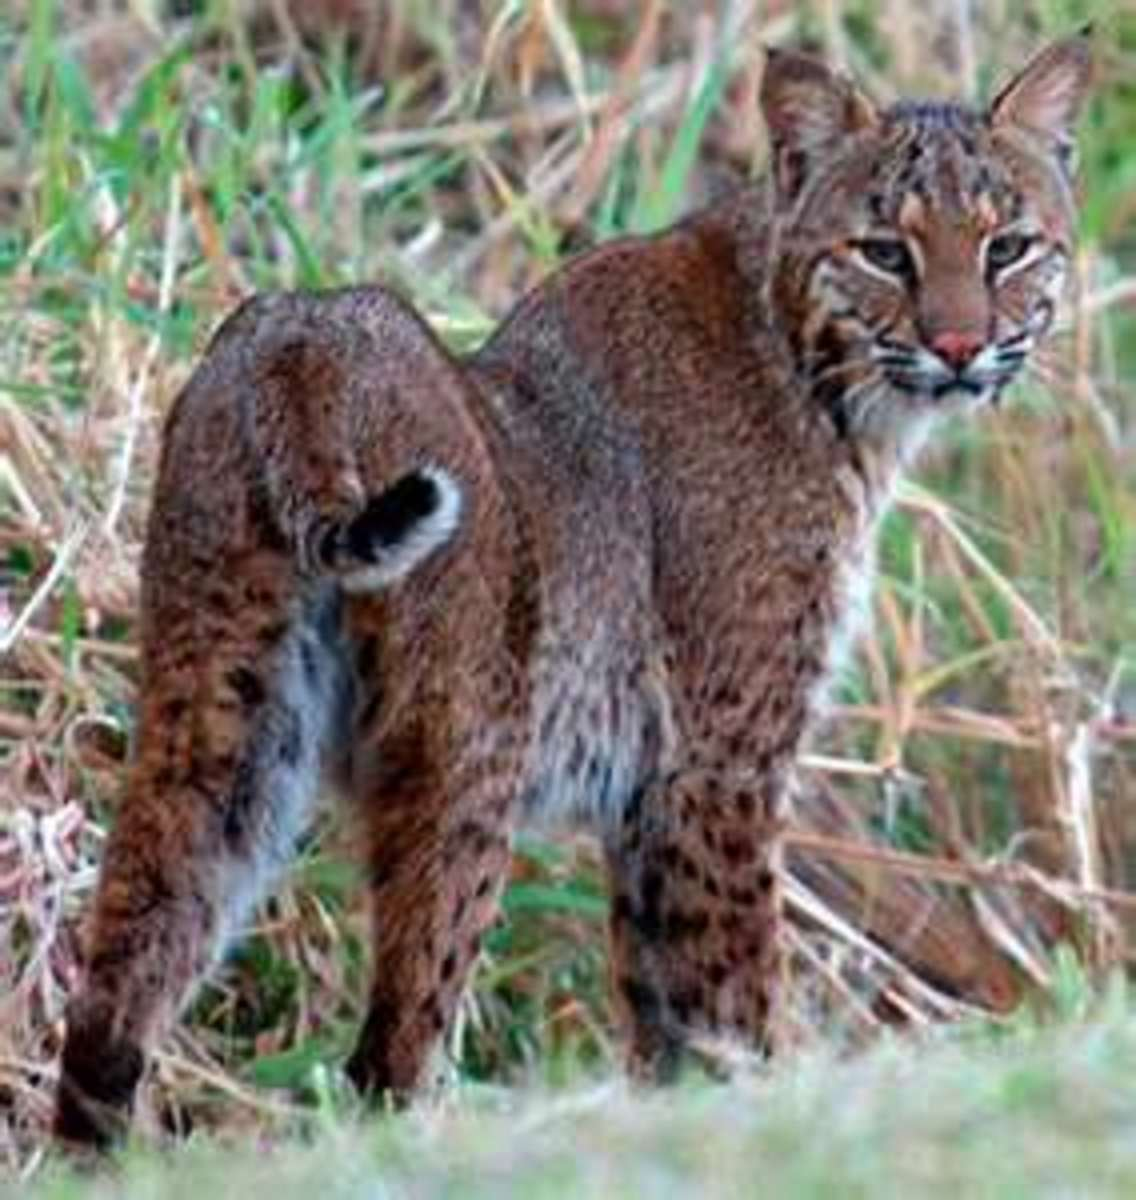 The Florida Bobcat